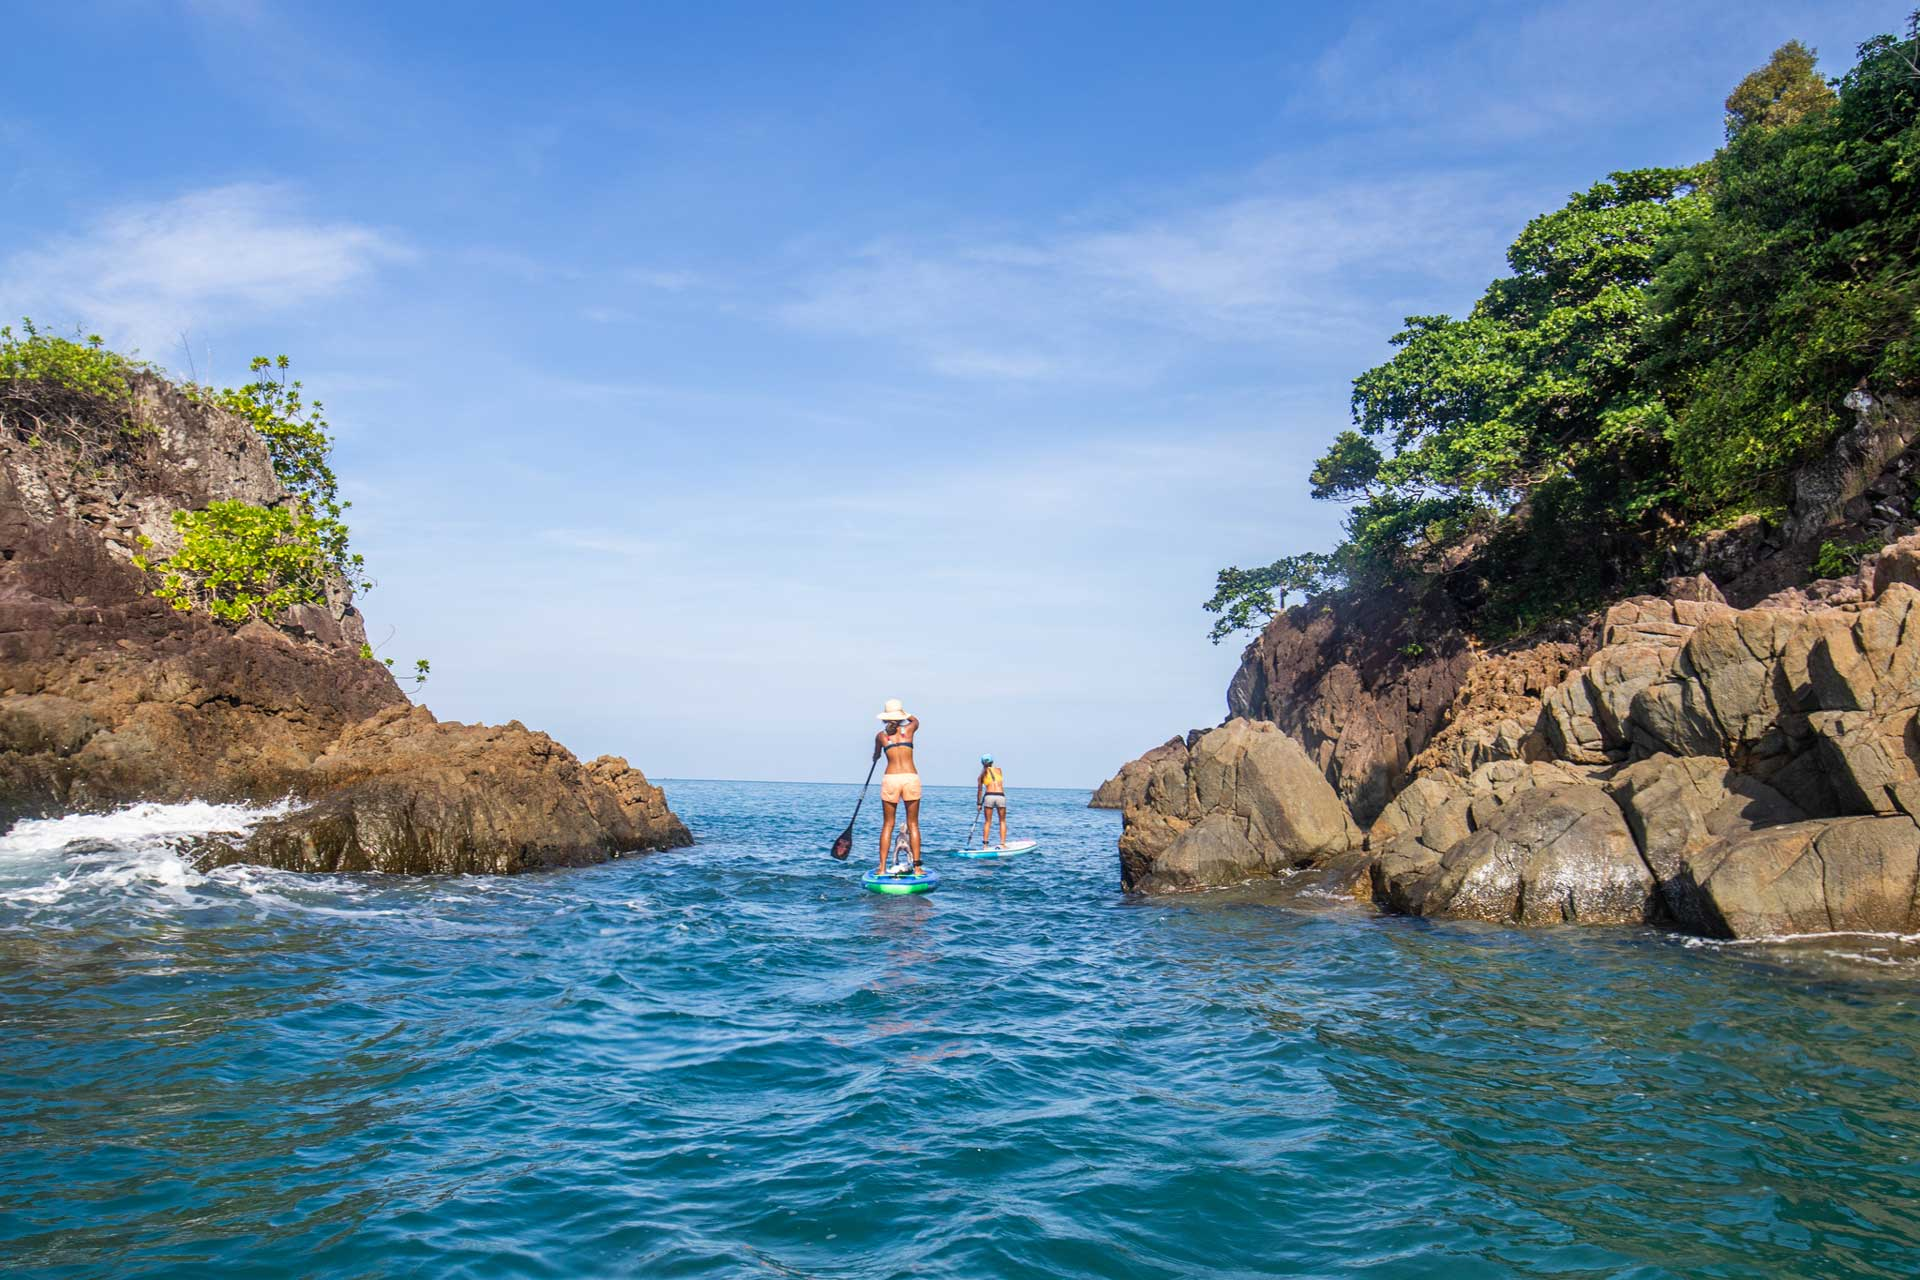 Starboard-SUP-Koh-Chang-Lost-in-Paradise-Again-with-Daniel-Hasulyo-4-national-park-explore-paddleboard-sup